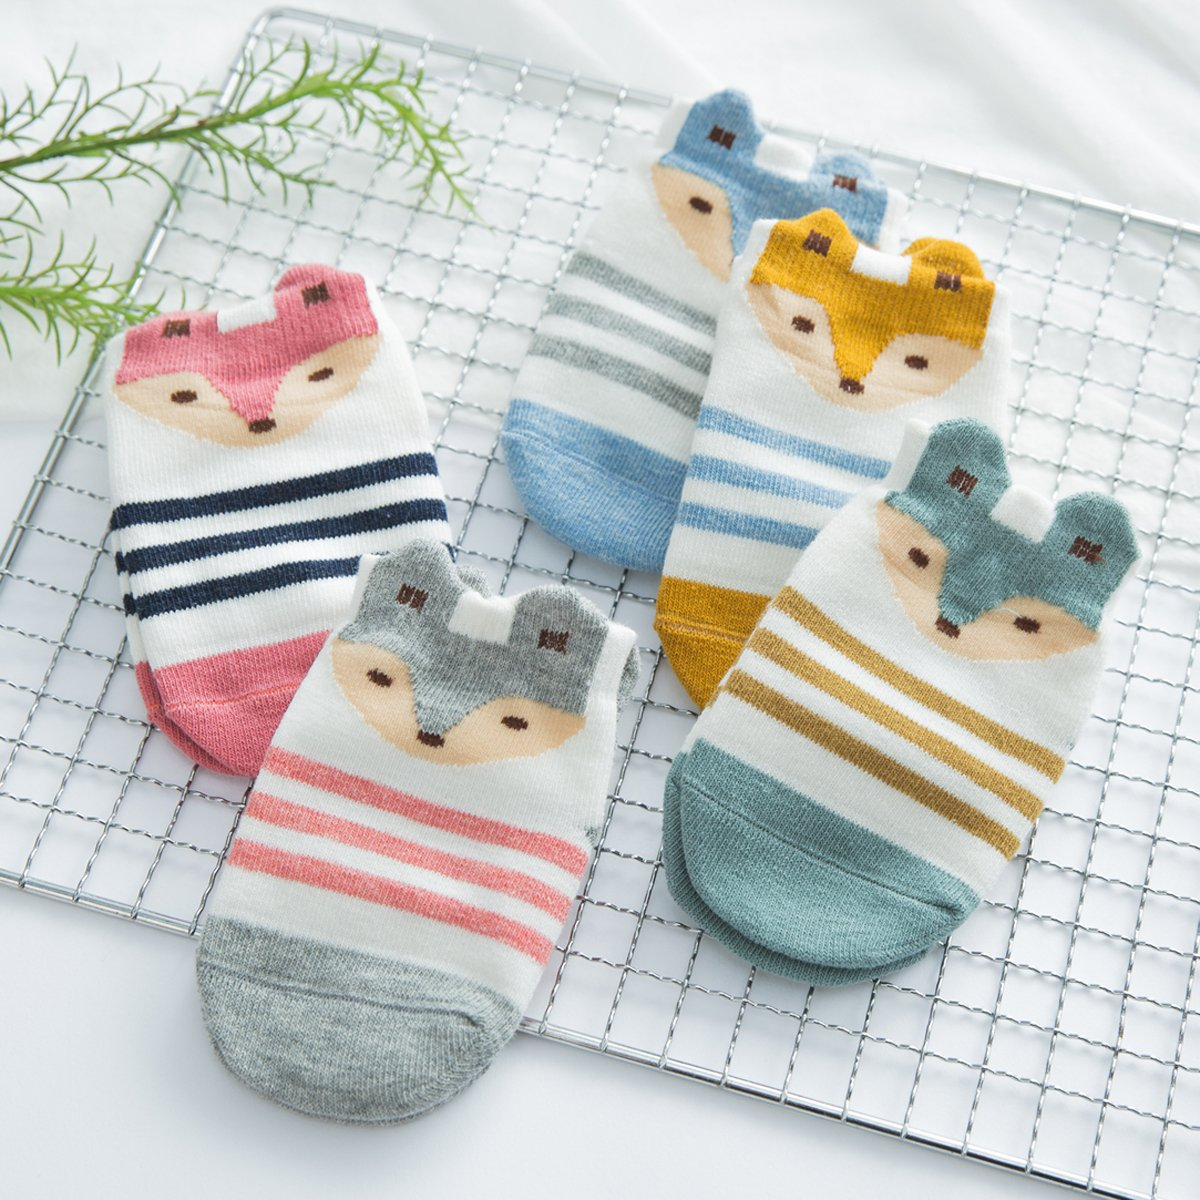 Fairy 5 Pairs Cartoon Cute Animals Fox Non Skid Cotton Baby Socks Stripes Socks (12 - 24 Months) by Fairy Socks (Image #5)